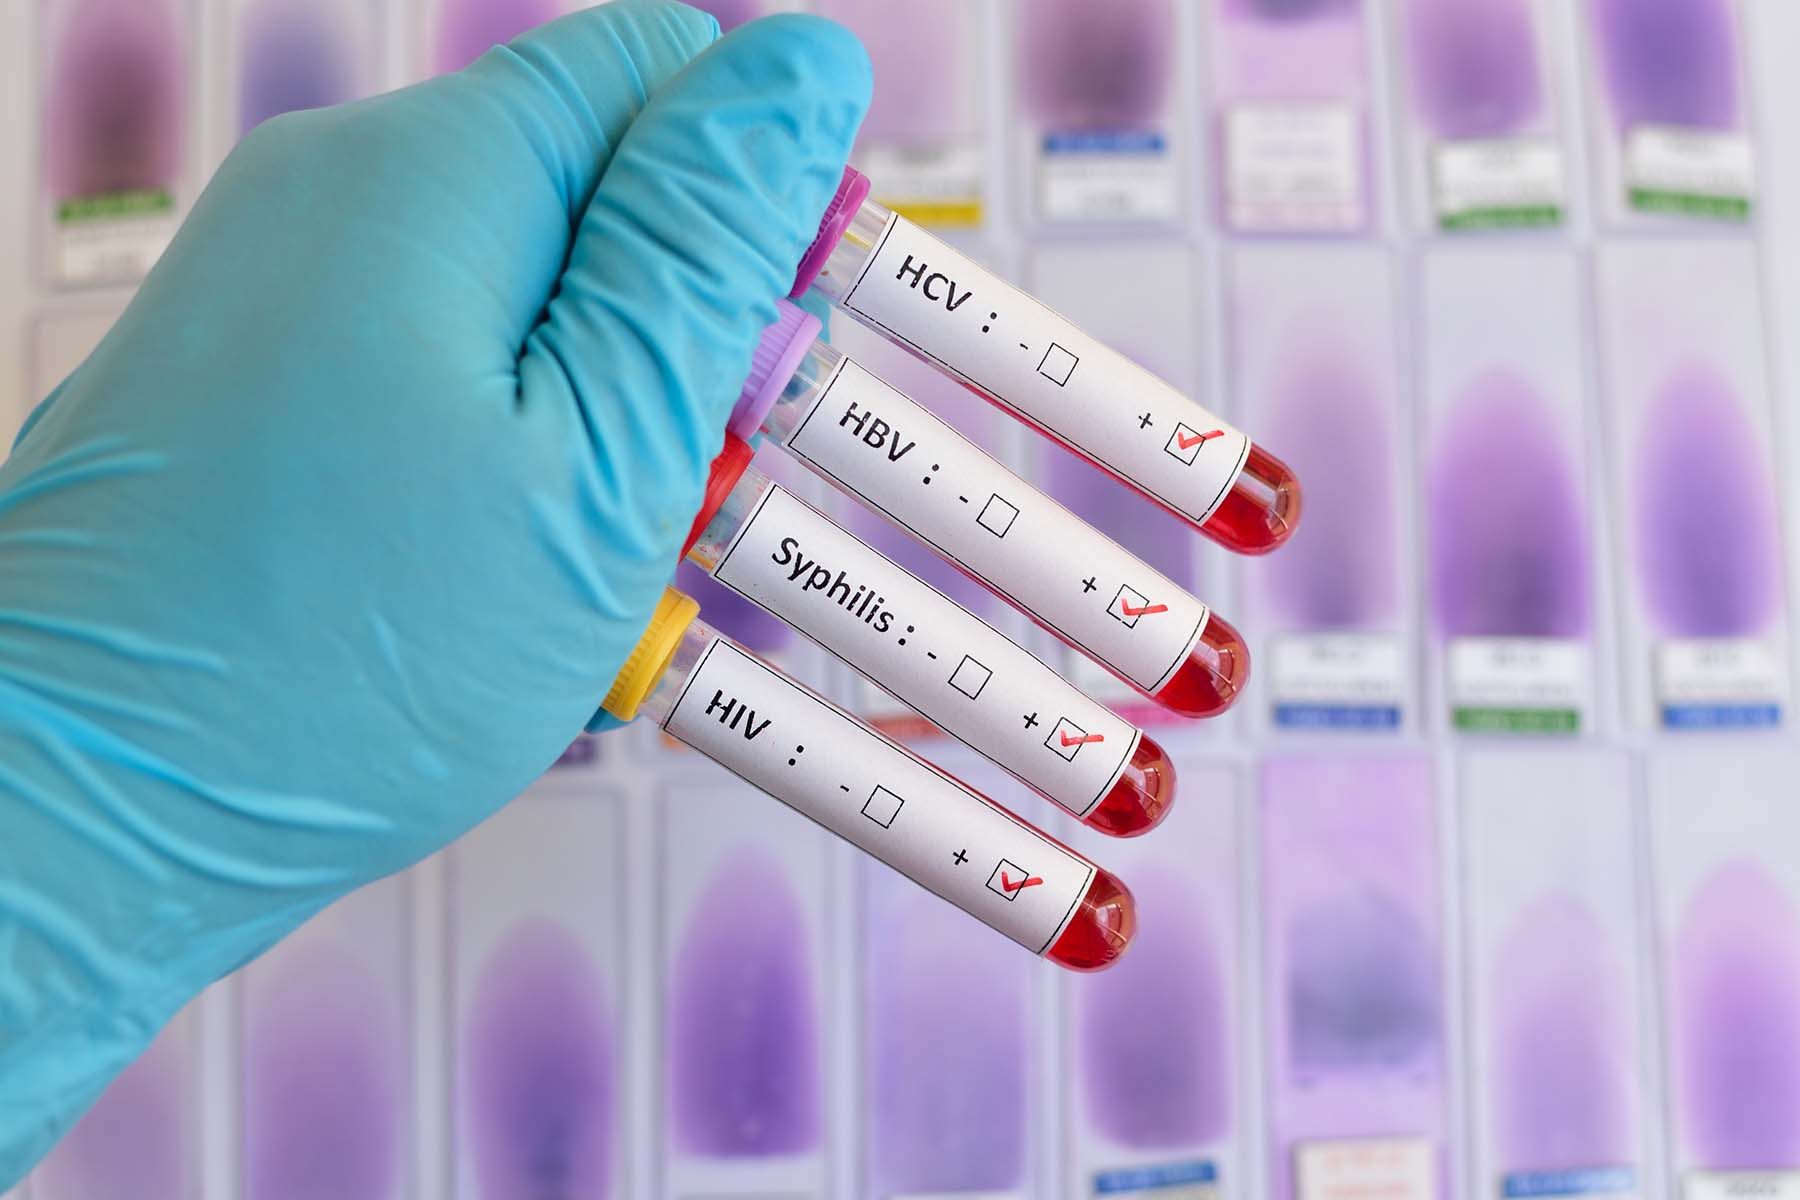 A doctor's gloved hand holding test tubes containing blood samples for sexually transmitted infections tests.